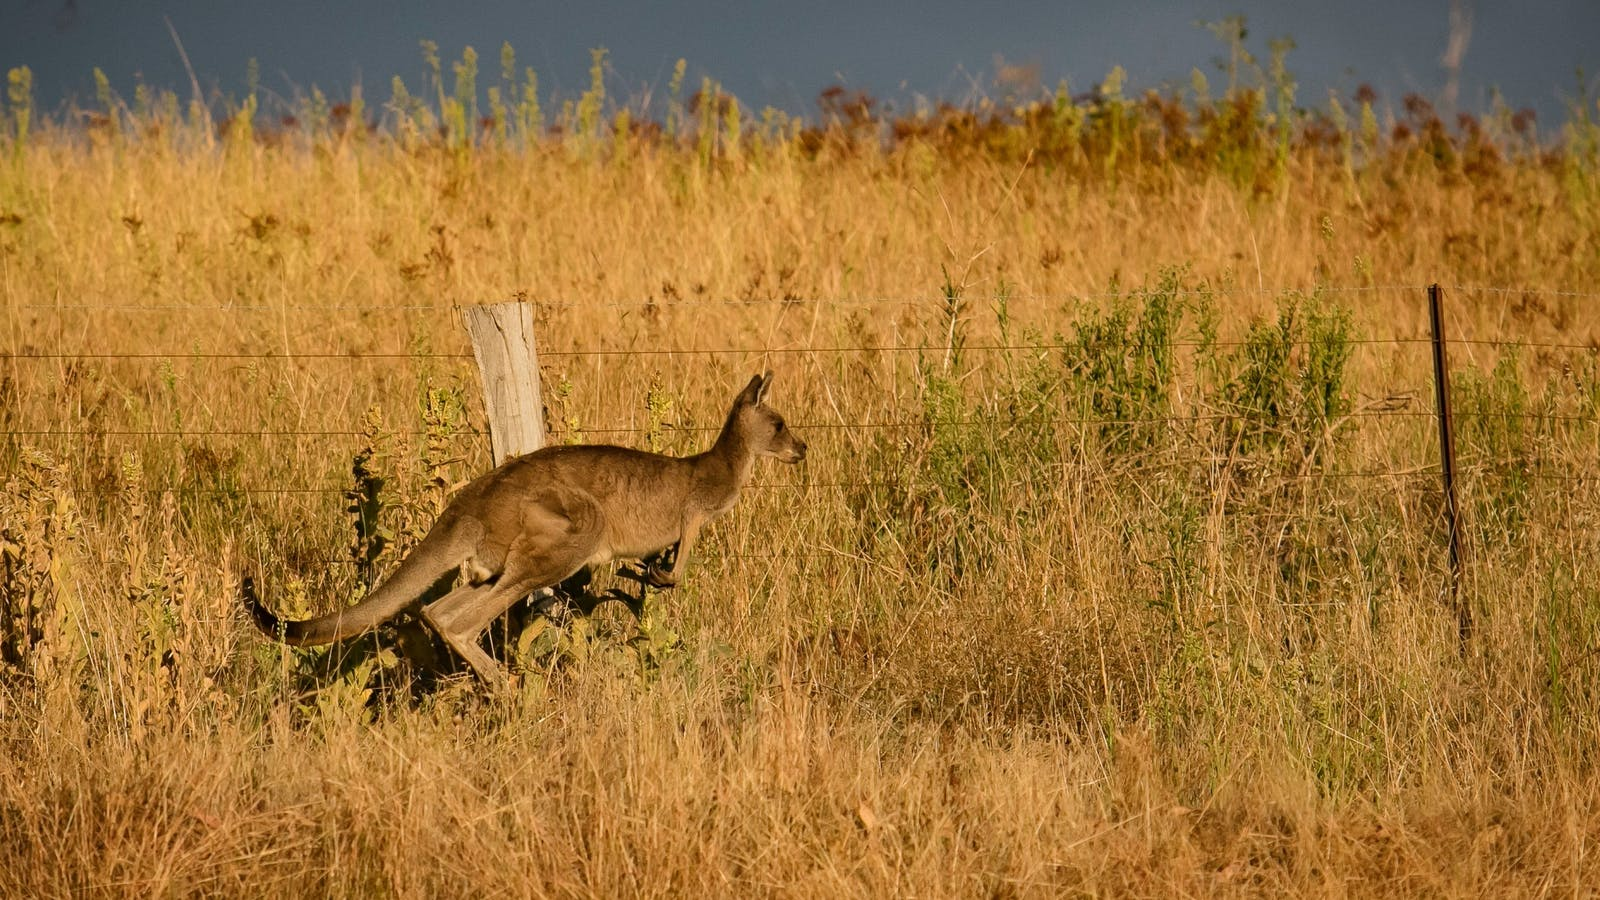 Local attractions; Kangaroo, The Lodge, Mt Bellevue King Valley